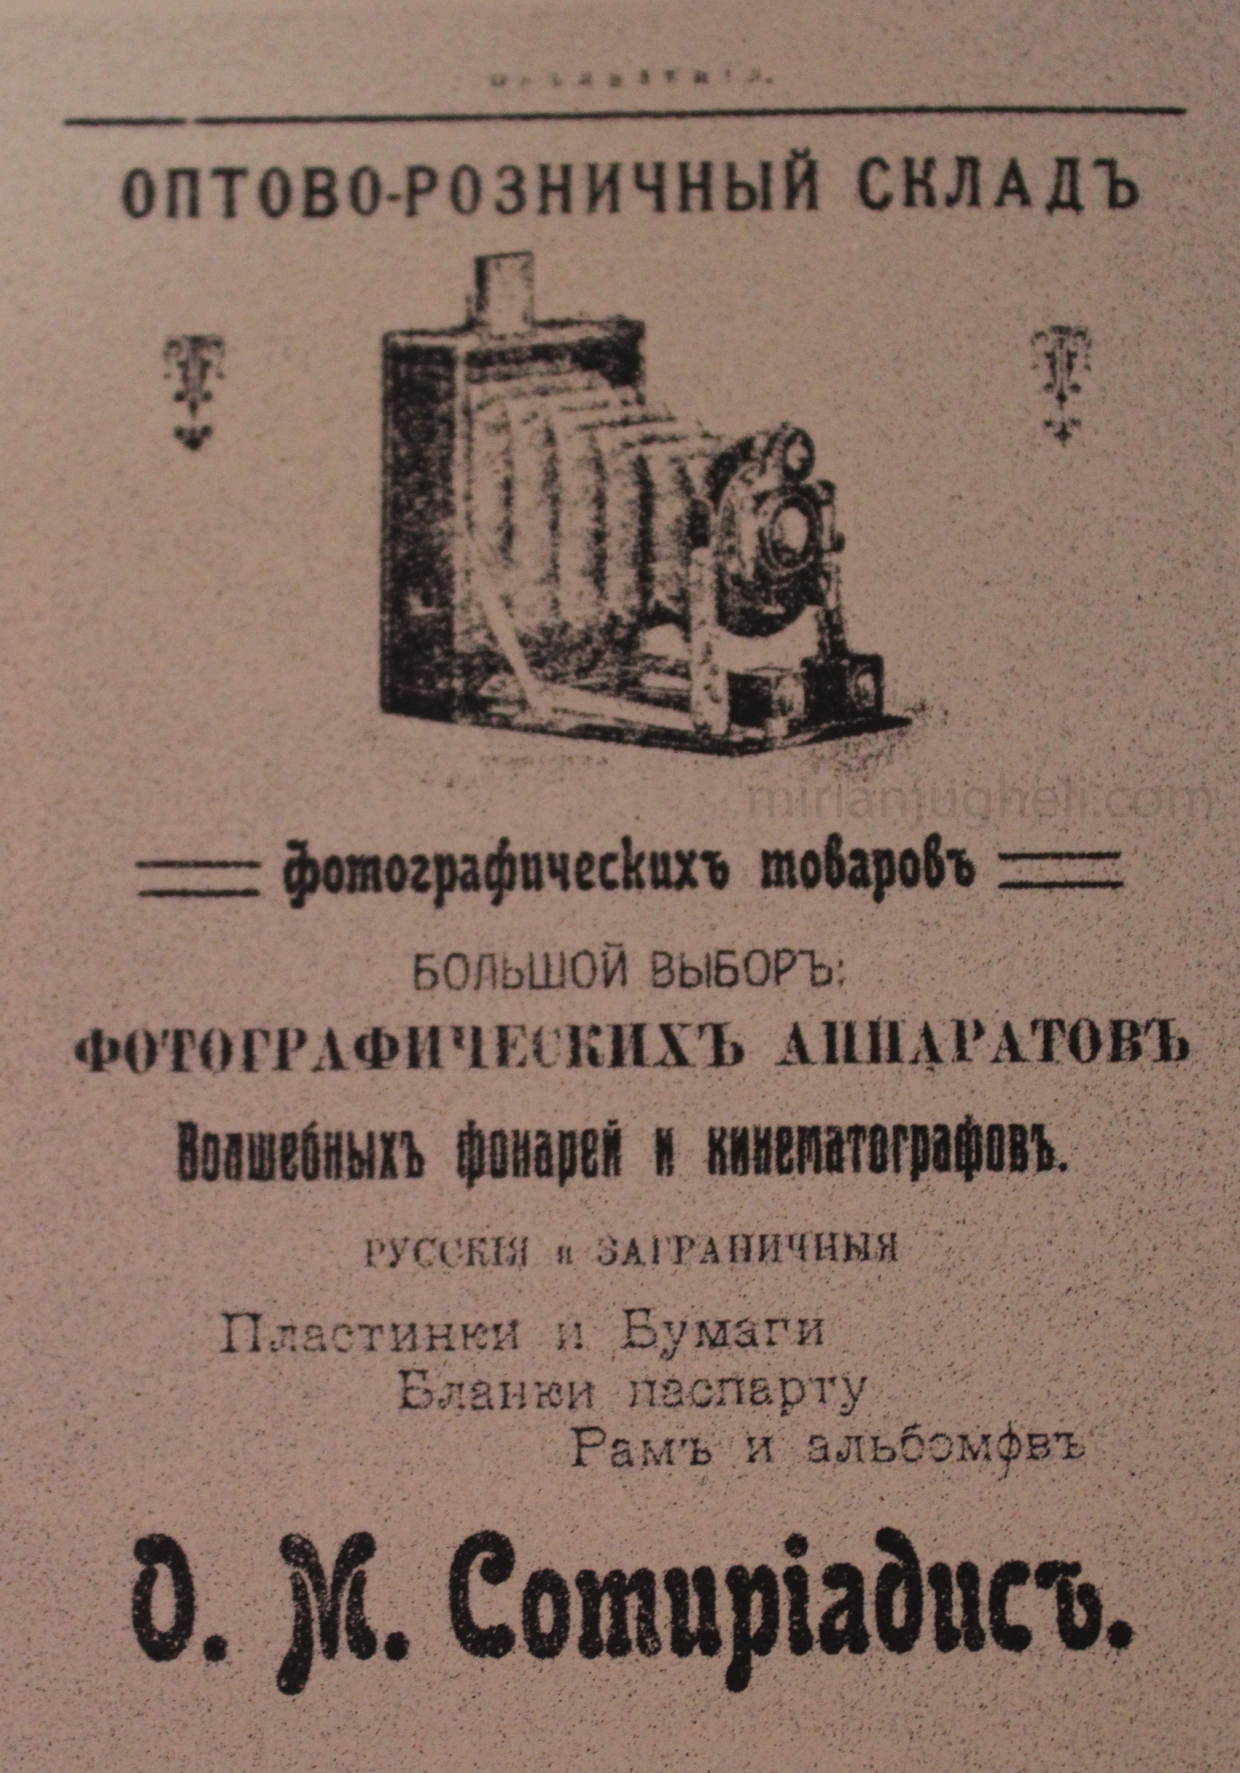 20th_century_georgian_advertising-7.jpg